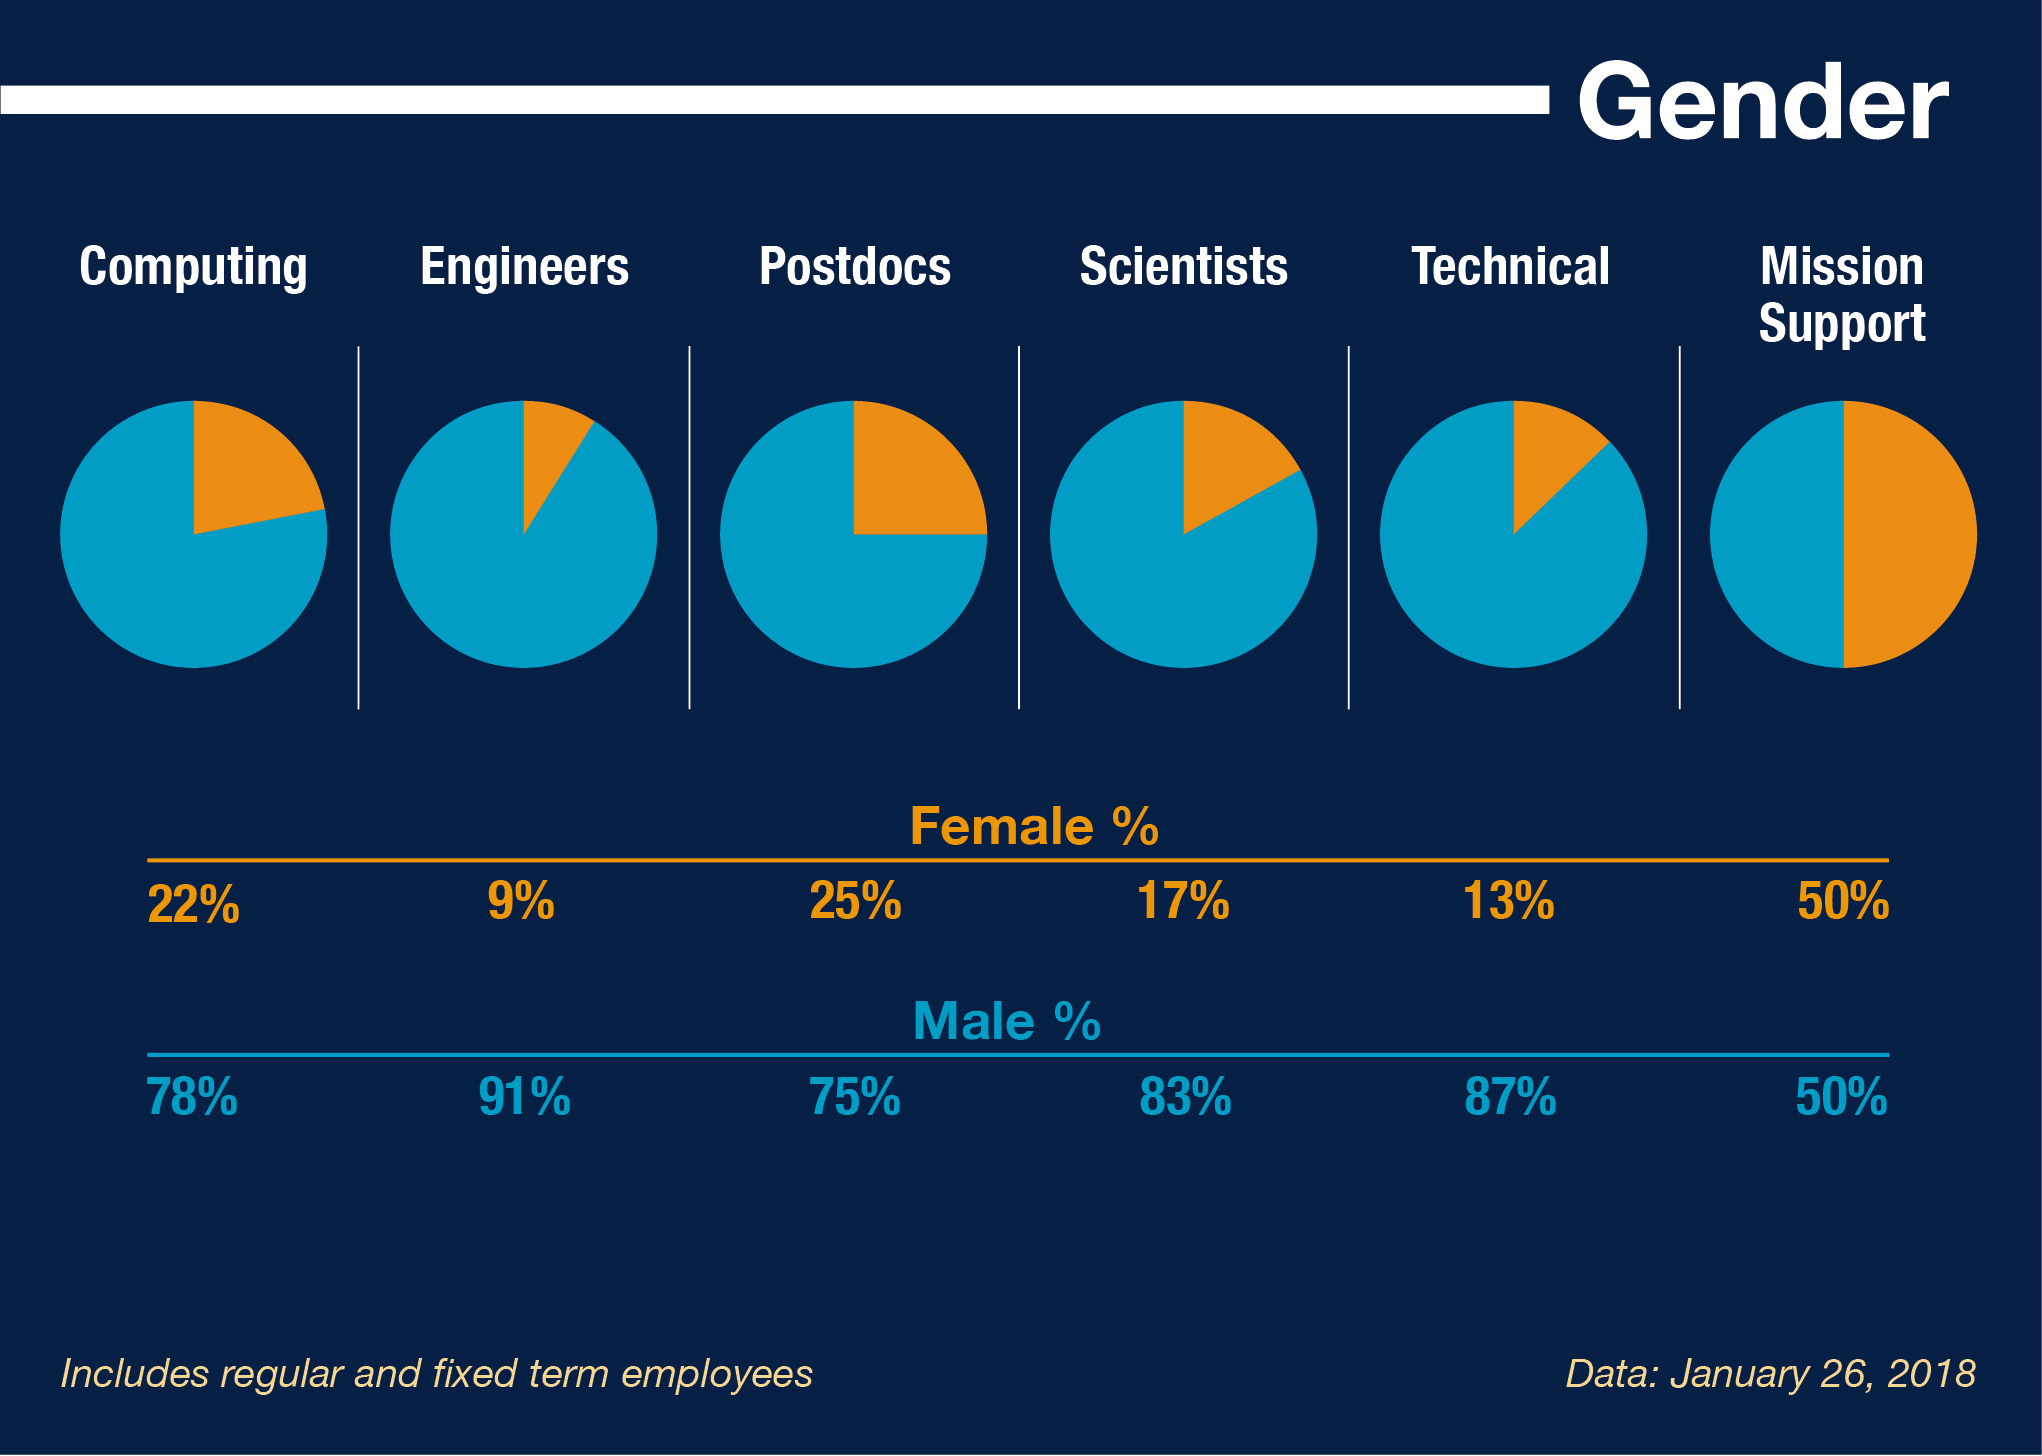 Gender profile. Includes regular and fixed term employees. Data: January 26, 2018